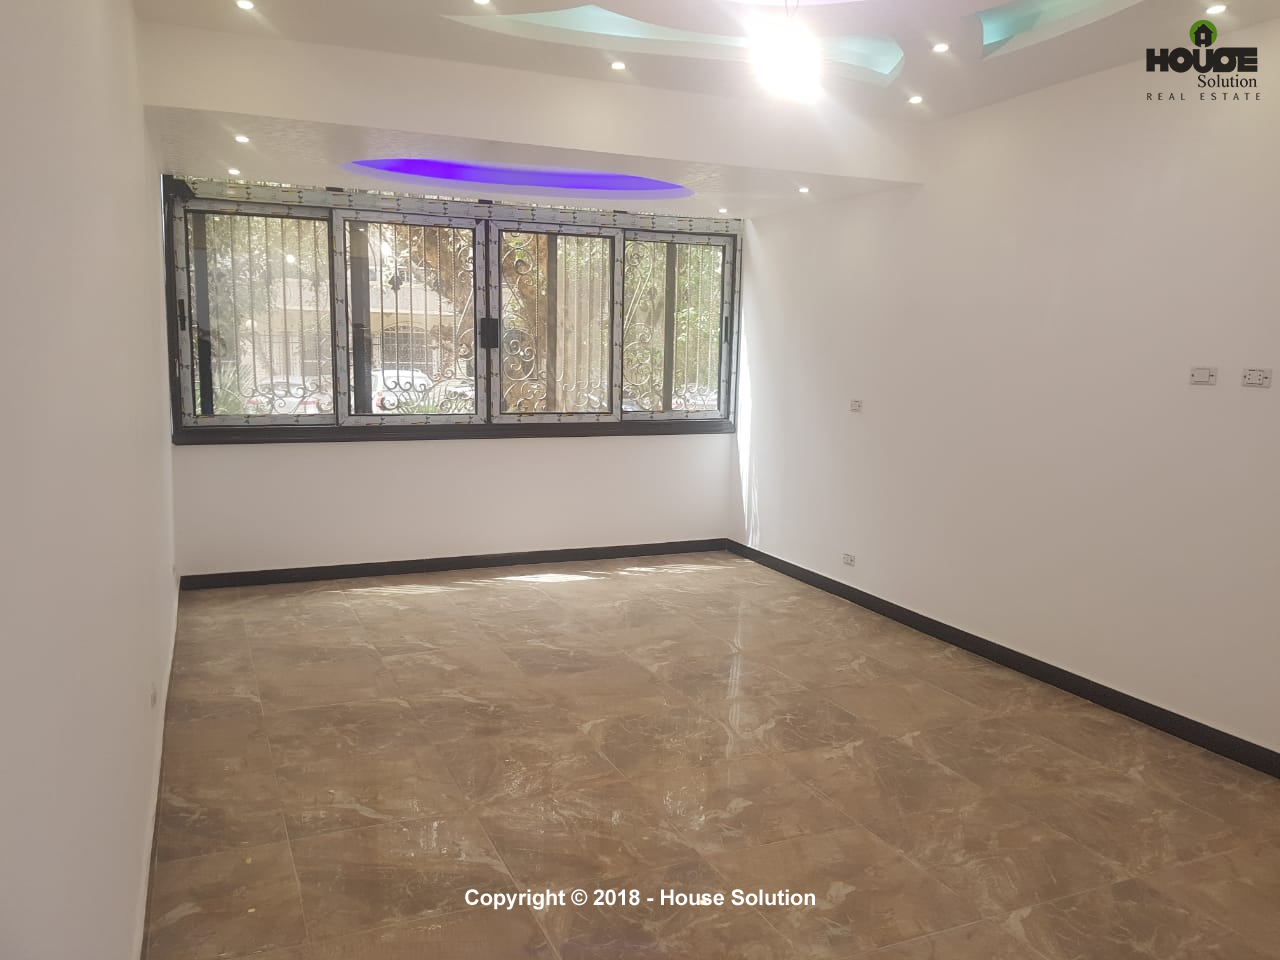 Office Spaces For Rent In Maadi Maadi Sarayat -#0